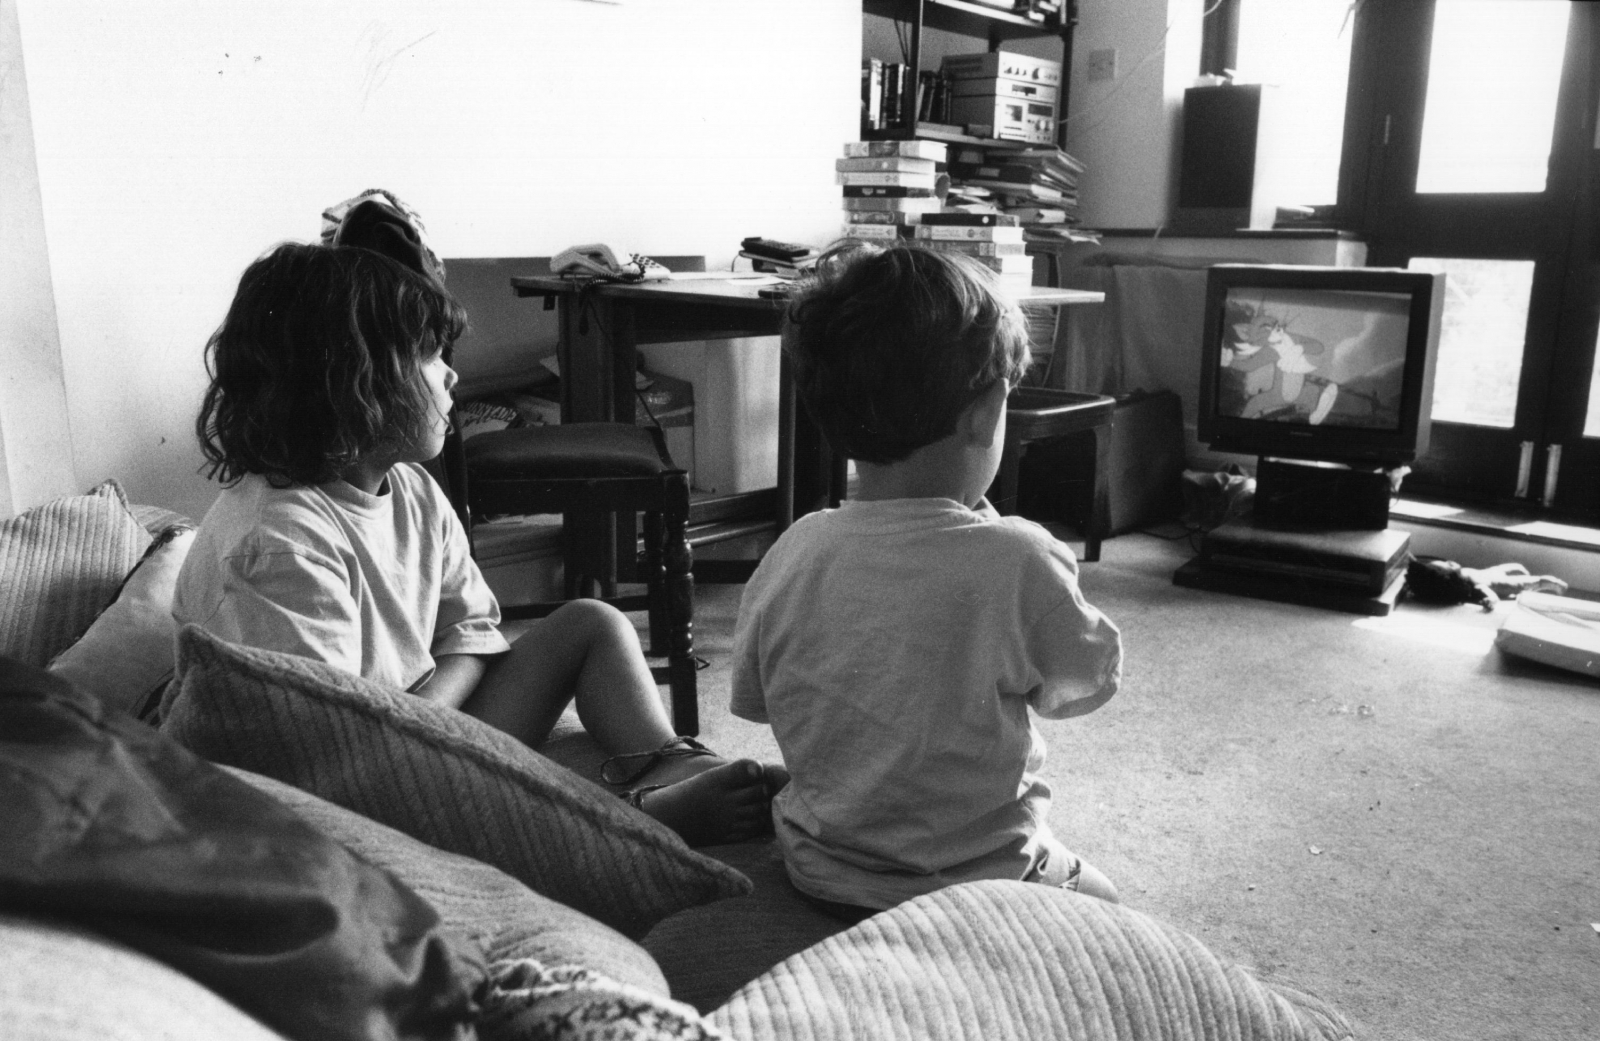 Children watching TV